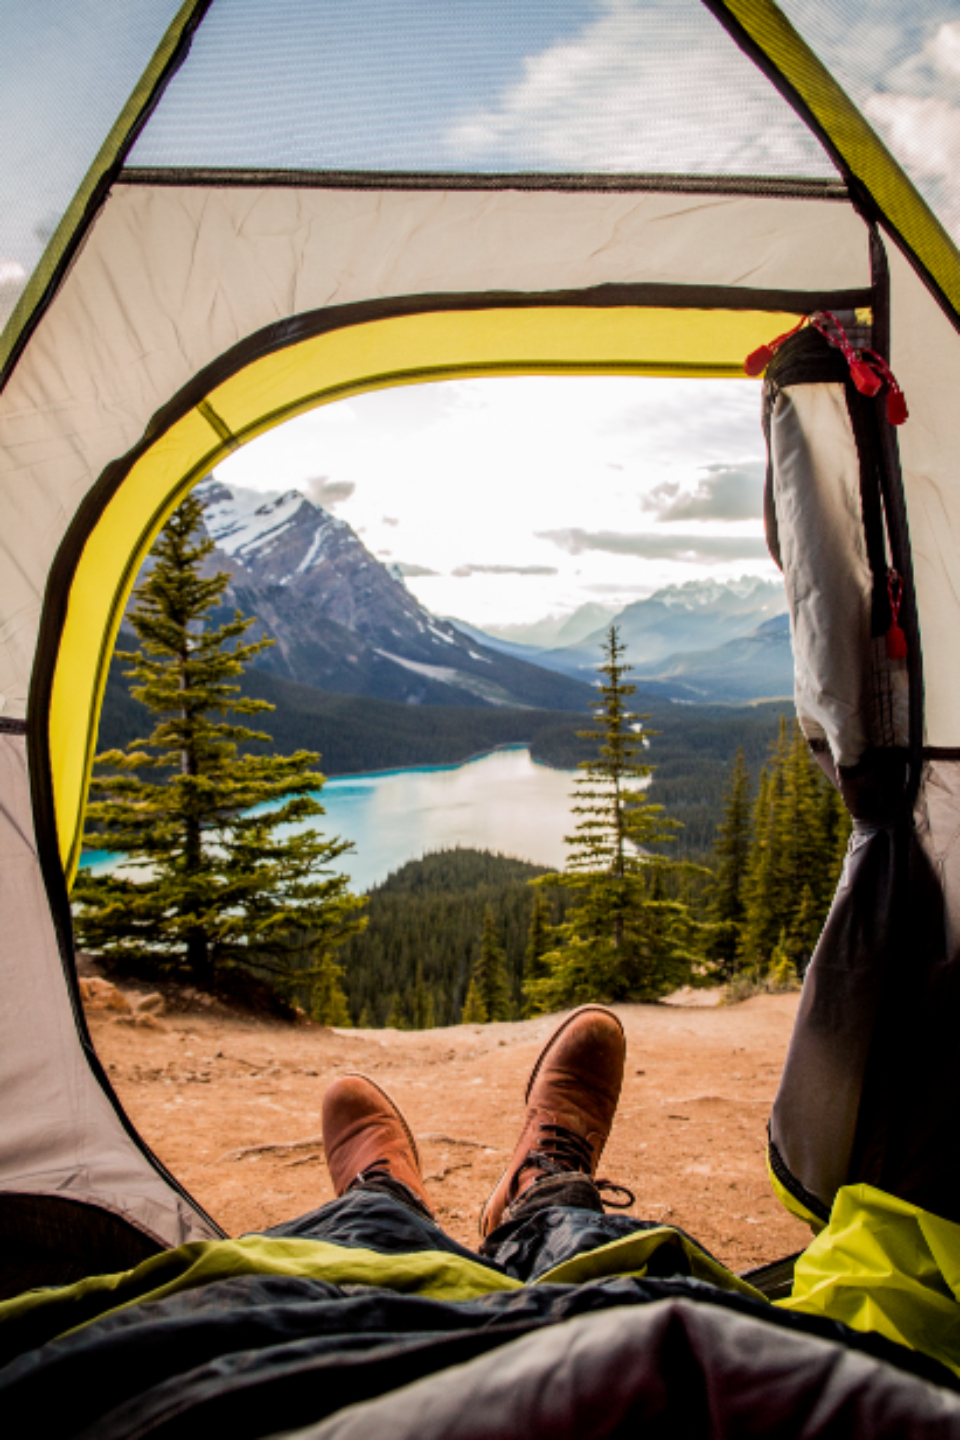 camping tent outdoors travel hiker hike camp lake nature landscape mountain woman sky adventure recreation leisure summer portrait scenic view mountains earth trees forest alberta park clouds